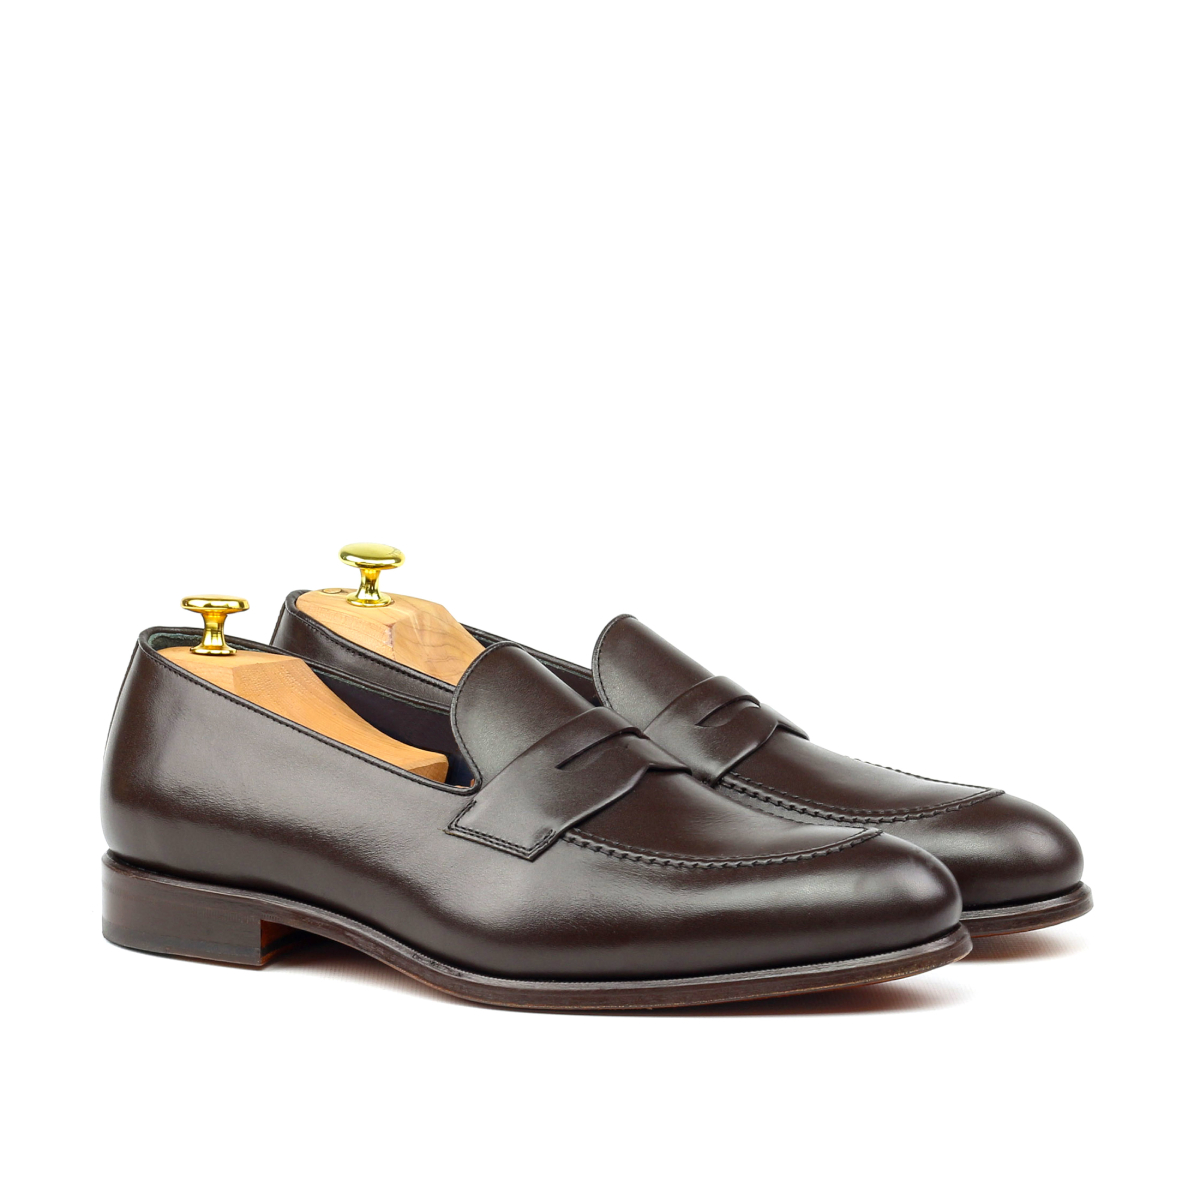 Brown box calf penny loafer